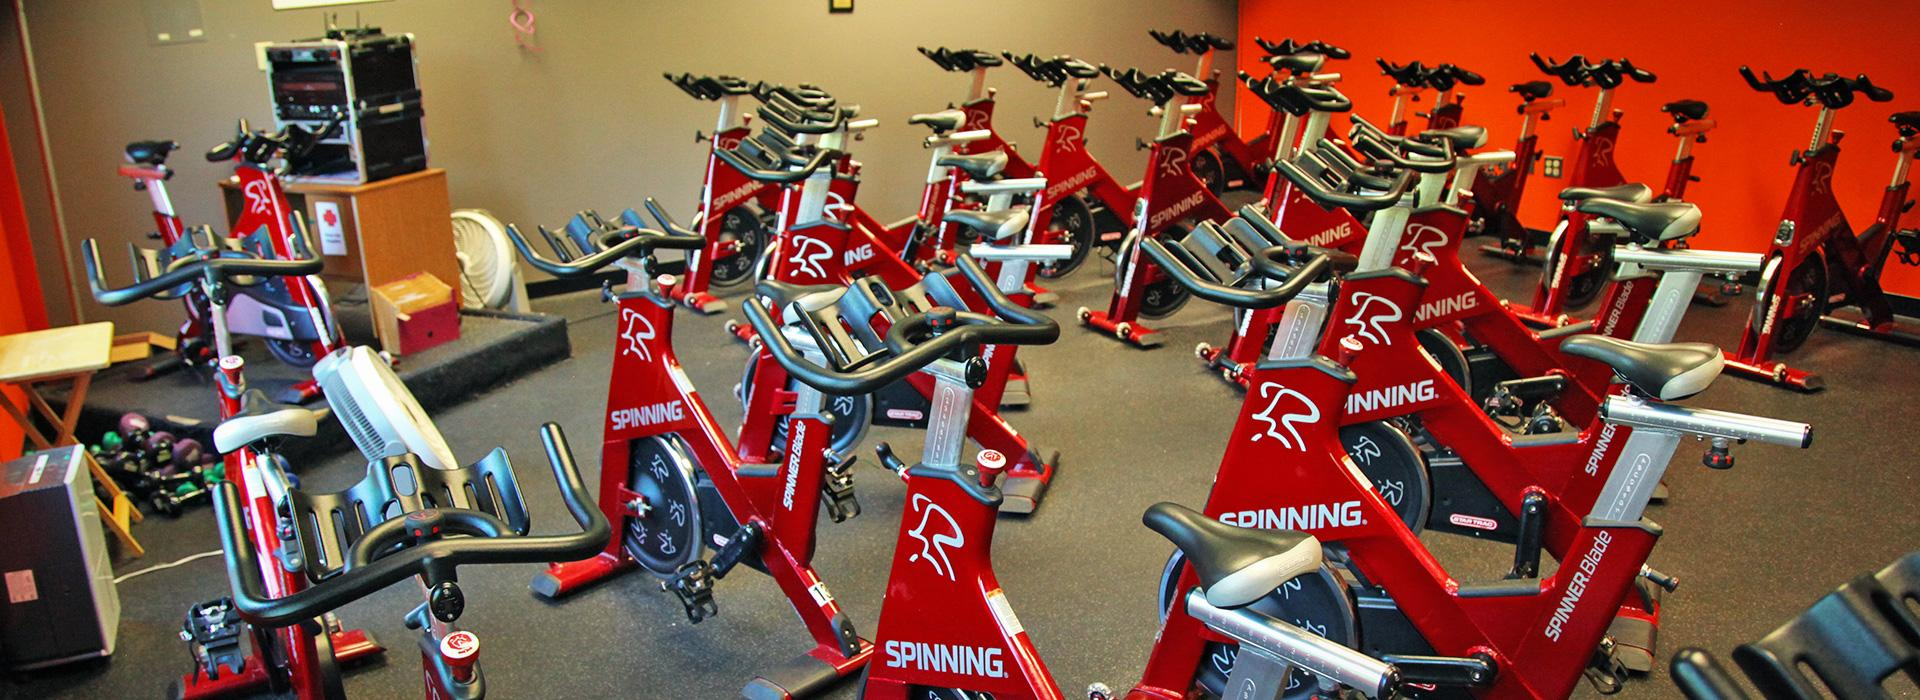 Taylor Bend Family YMCA Group cycling Room